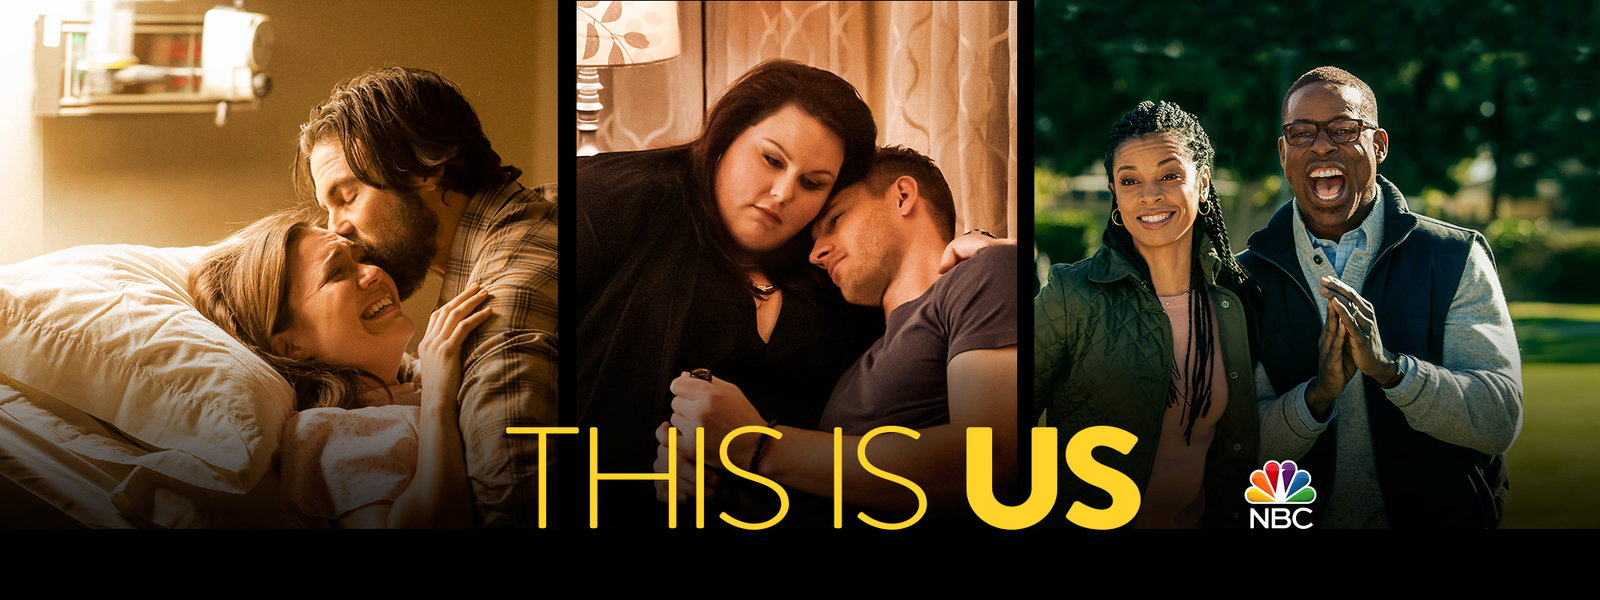 This is us, premier coup de coeur de 2018